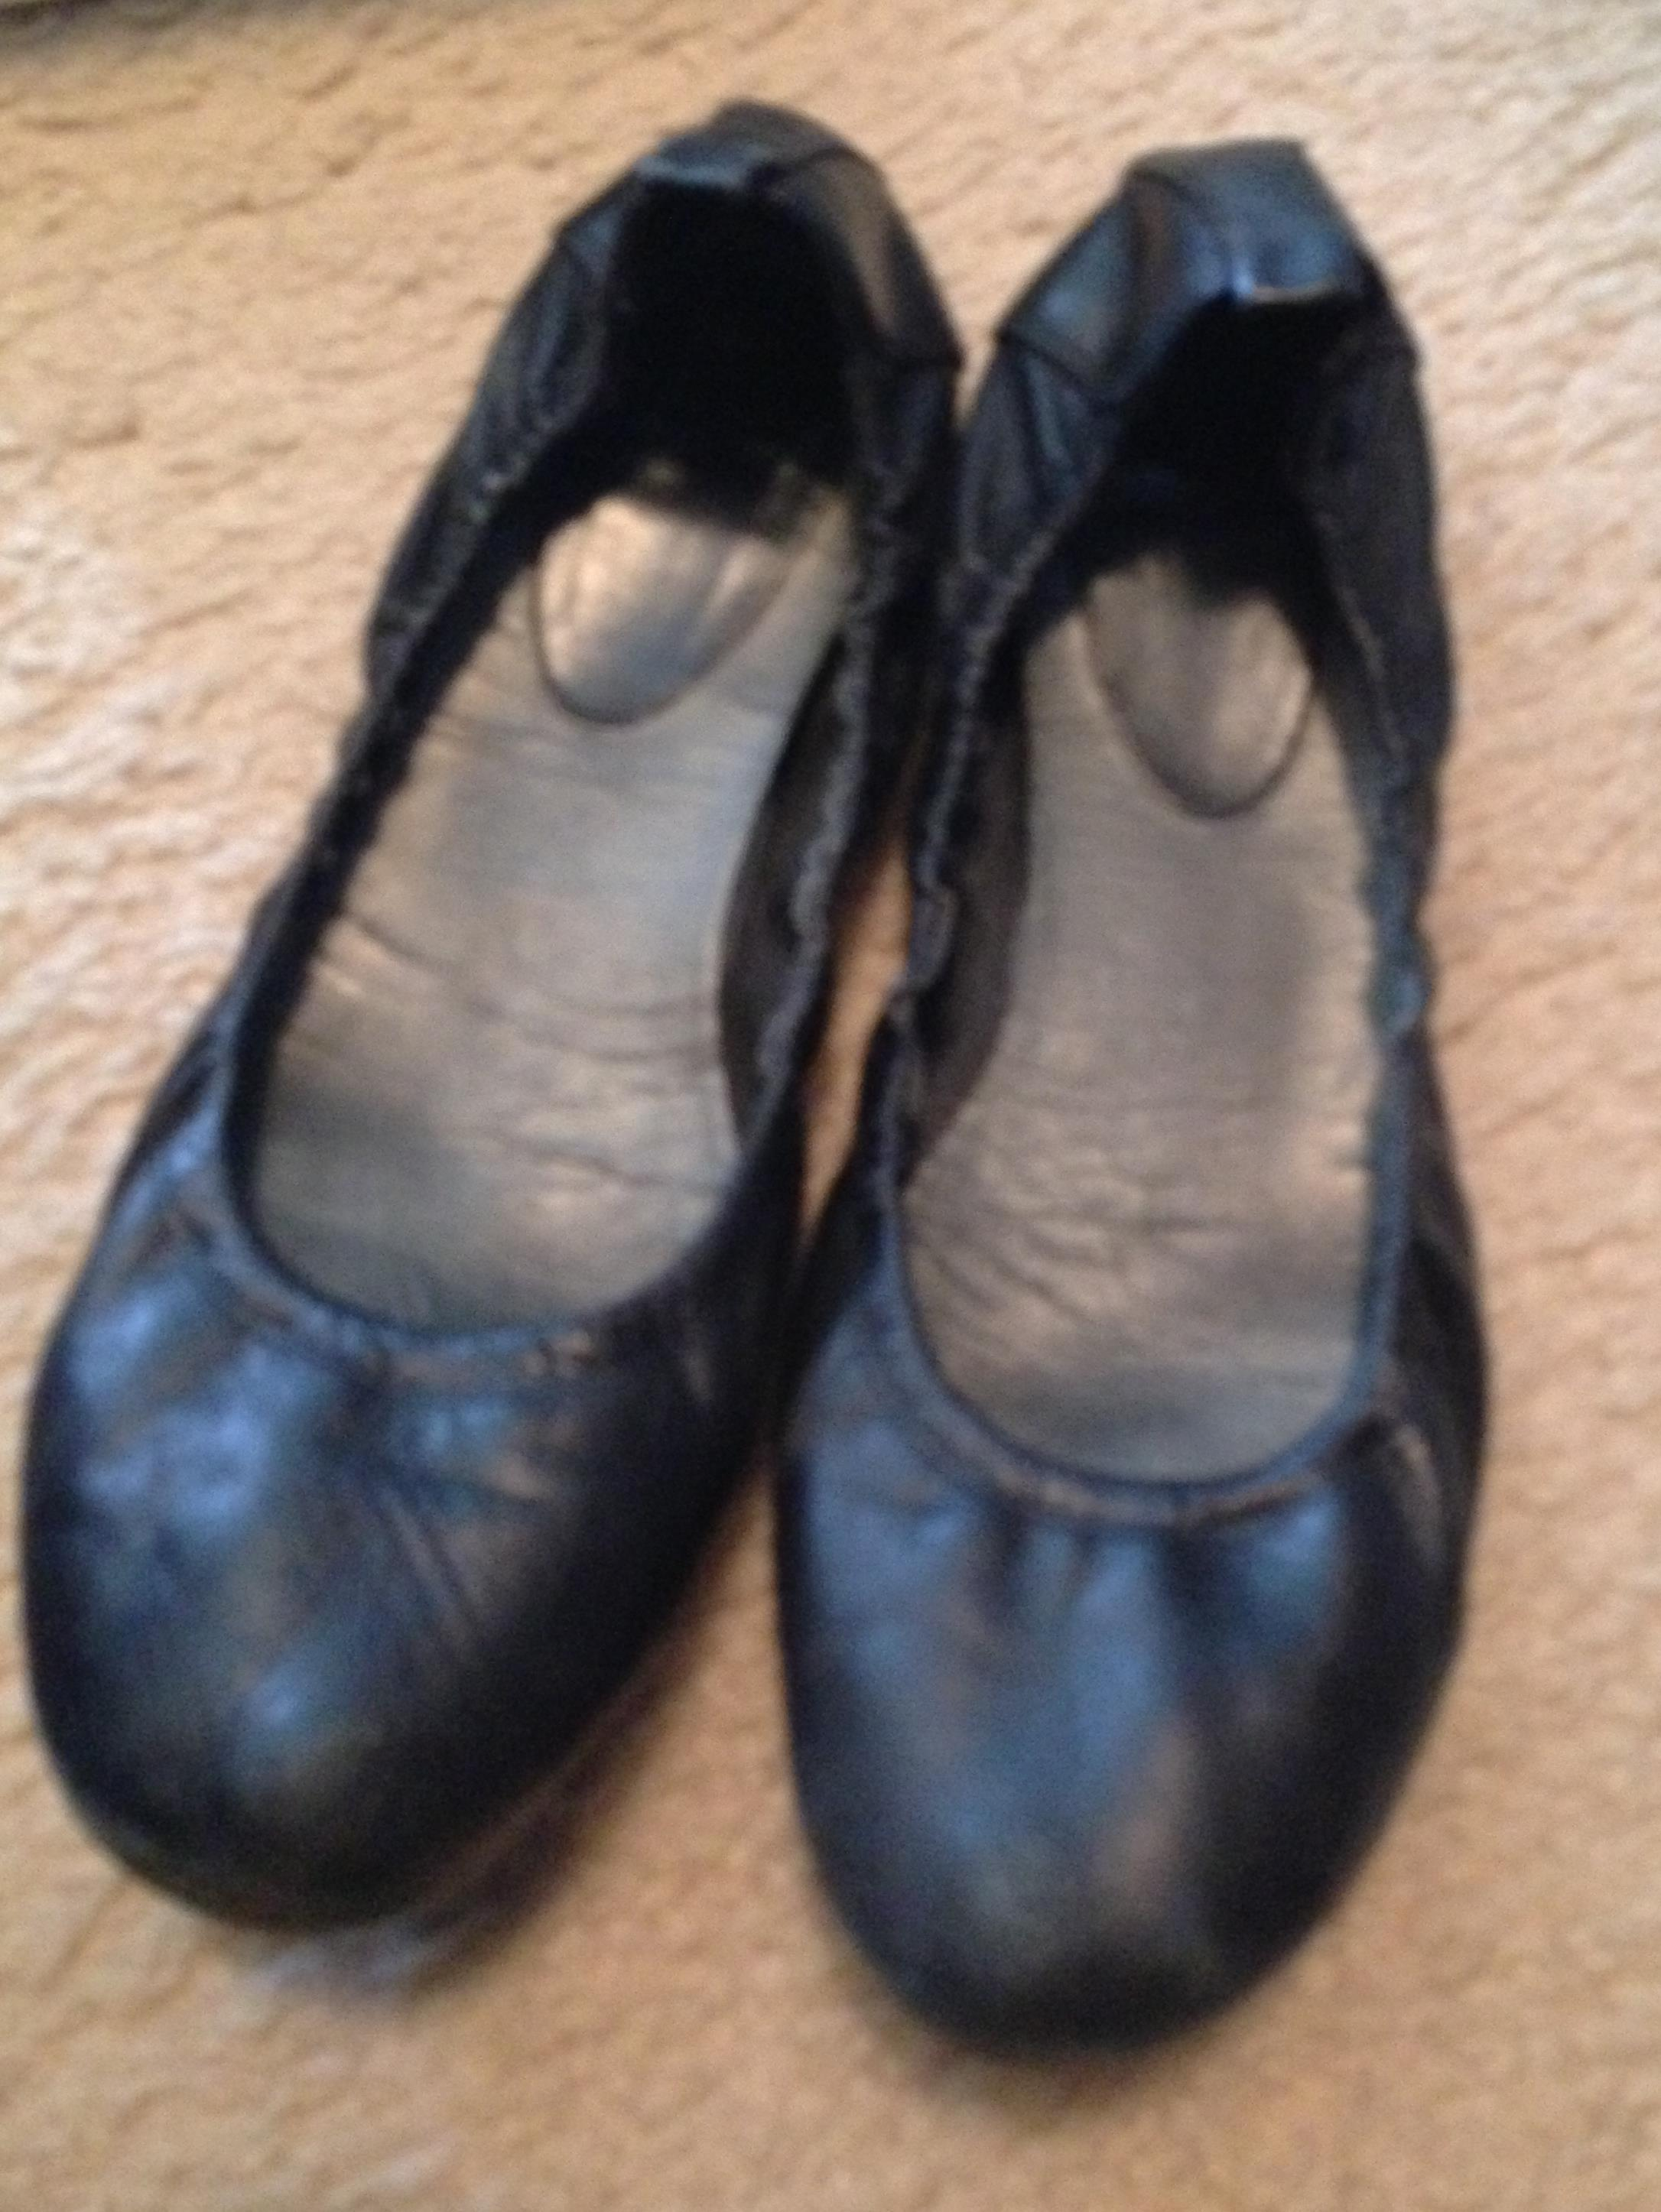 Cole Haan Air Nike Ballet Flats. The